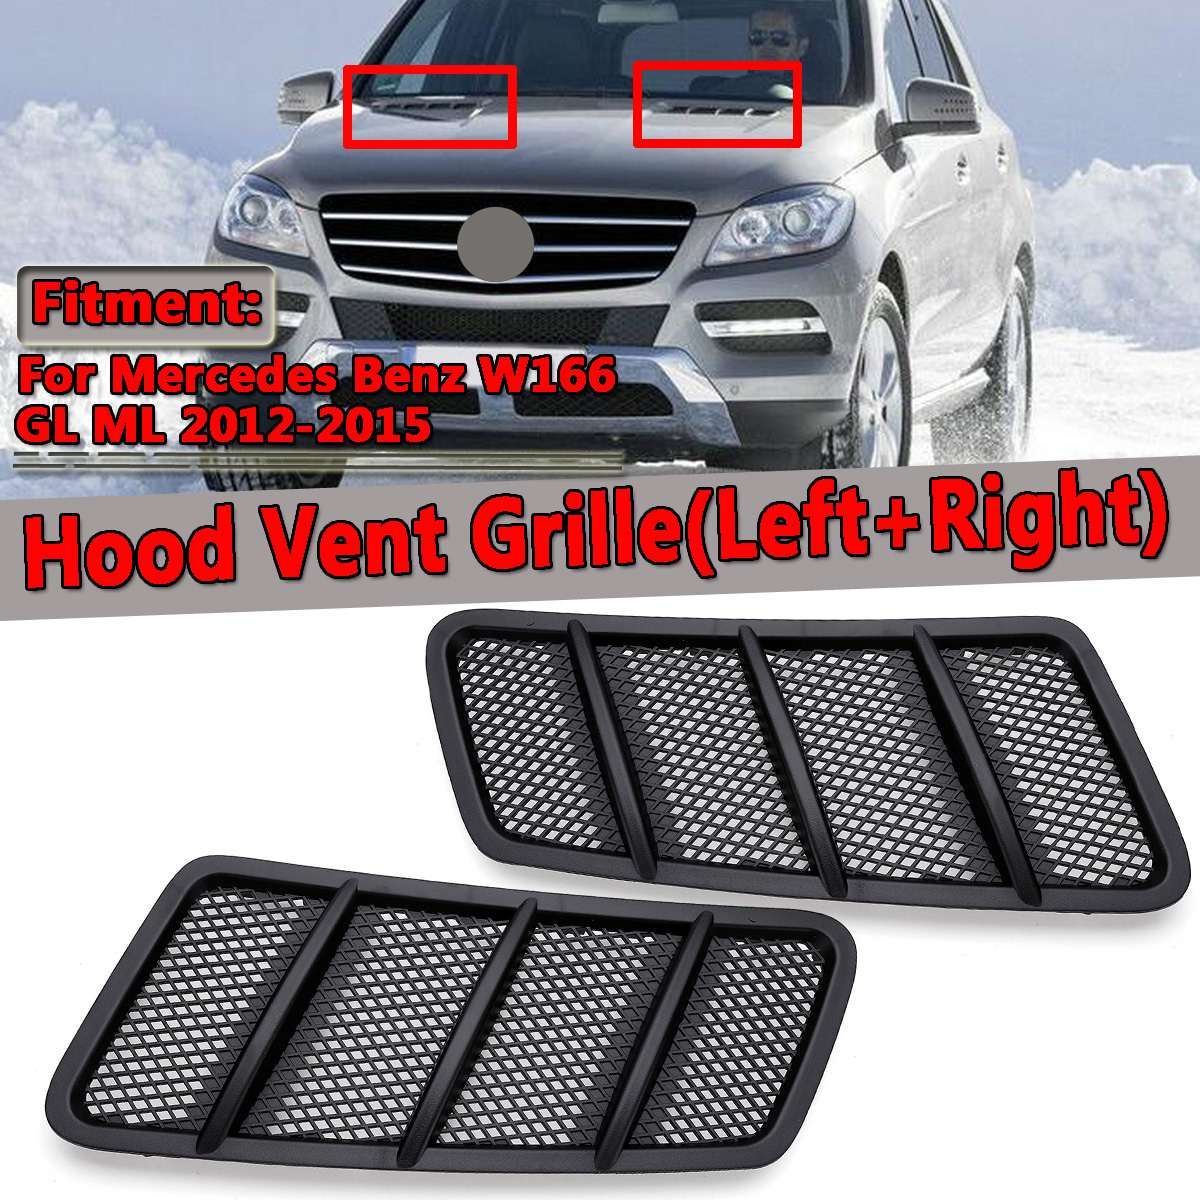 New Car Front Hood Vent Grille Air Flow Intake Hood For Mercedes For Benz W166 GL GL350 GL450 GL550 ML ML350 ML550 2012-2015 grille